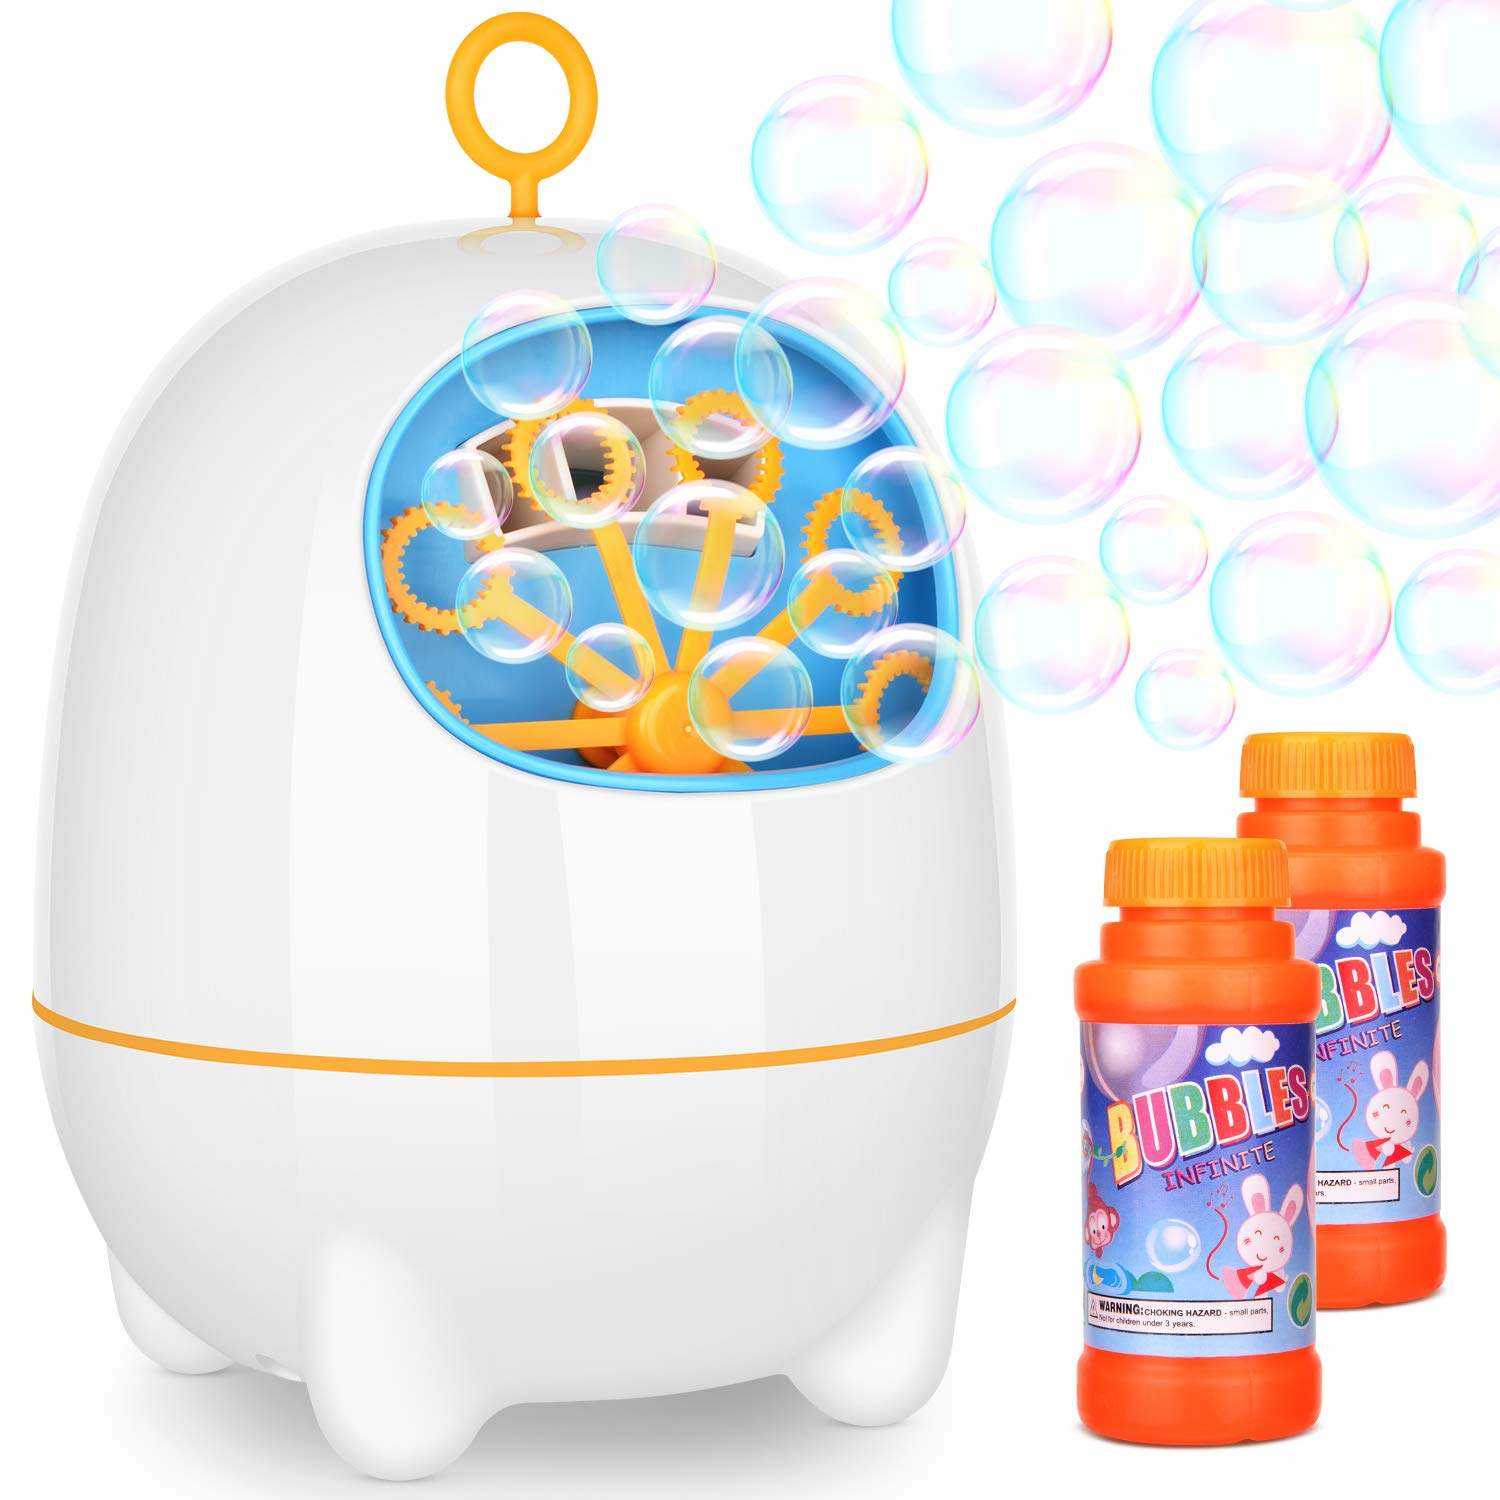 Bubble Machine BATTOP Electronic Bubble Maker Powered by USB Charging With Two Speed Settings for Kids Party